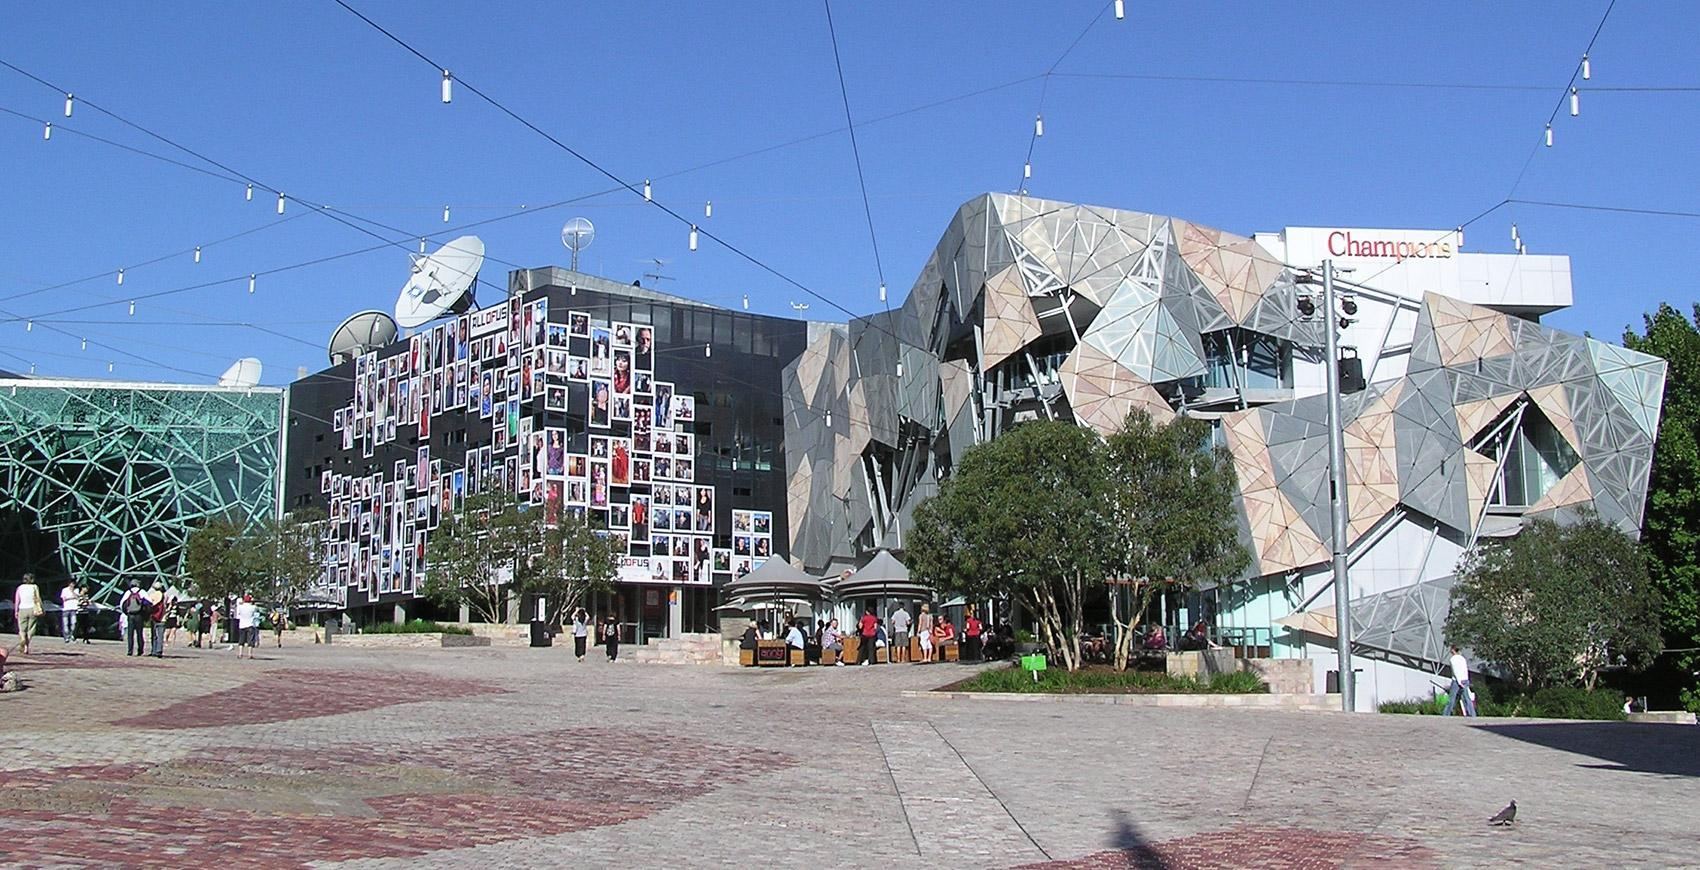 Federation Square building design Melbourne, Australia